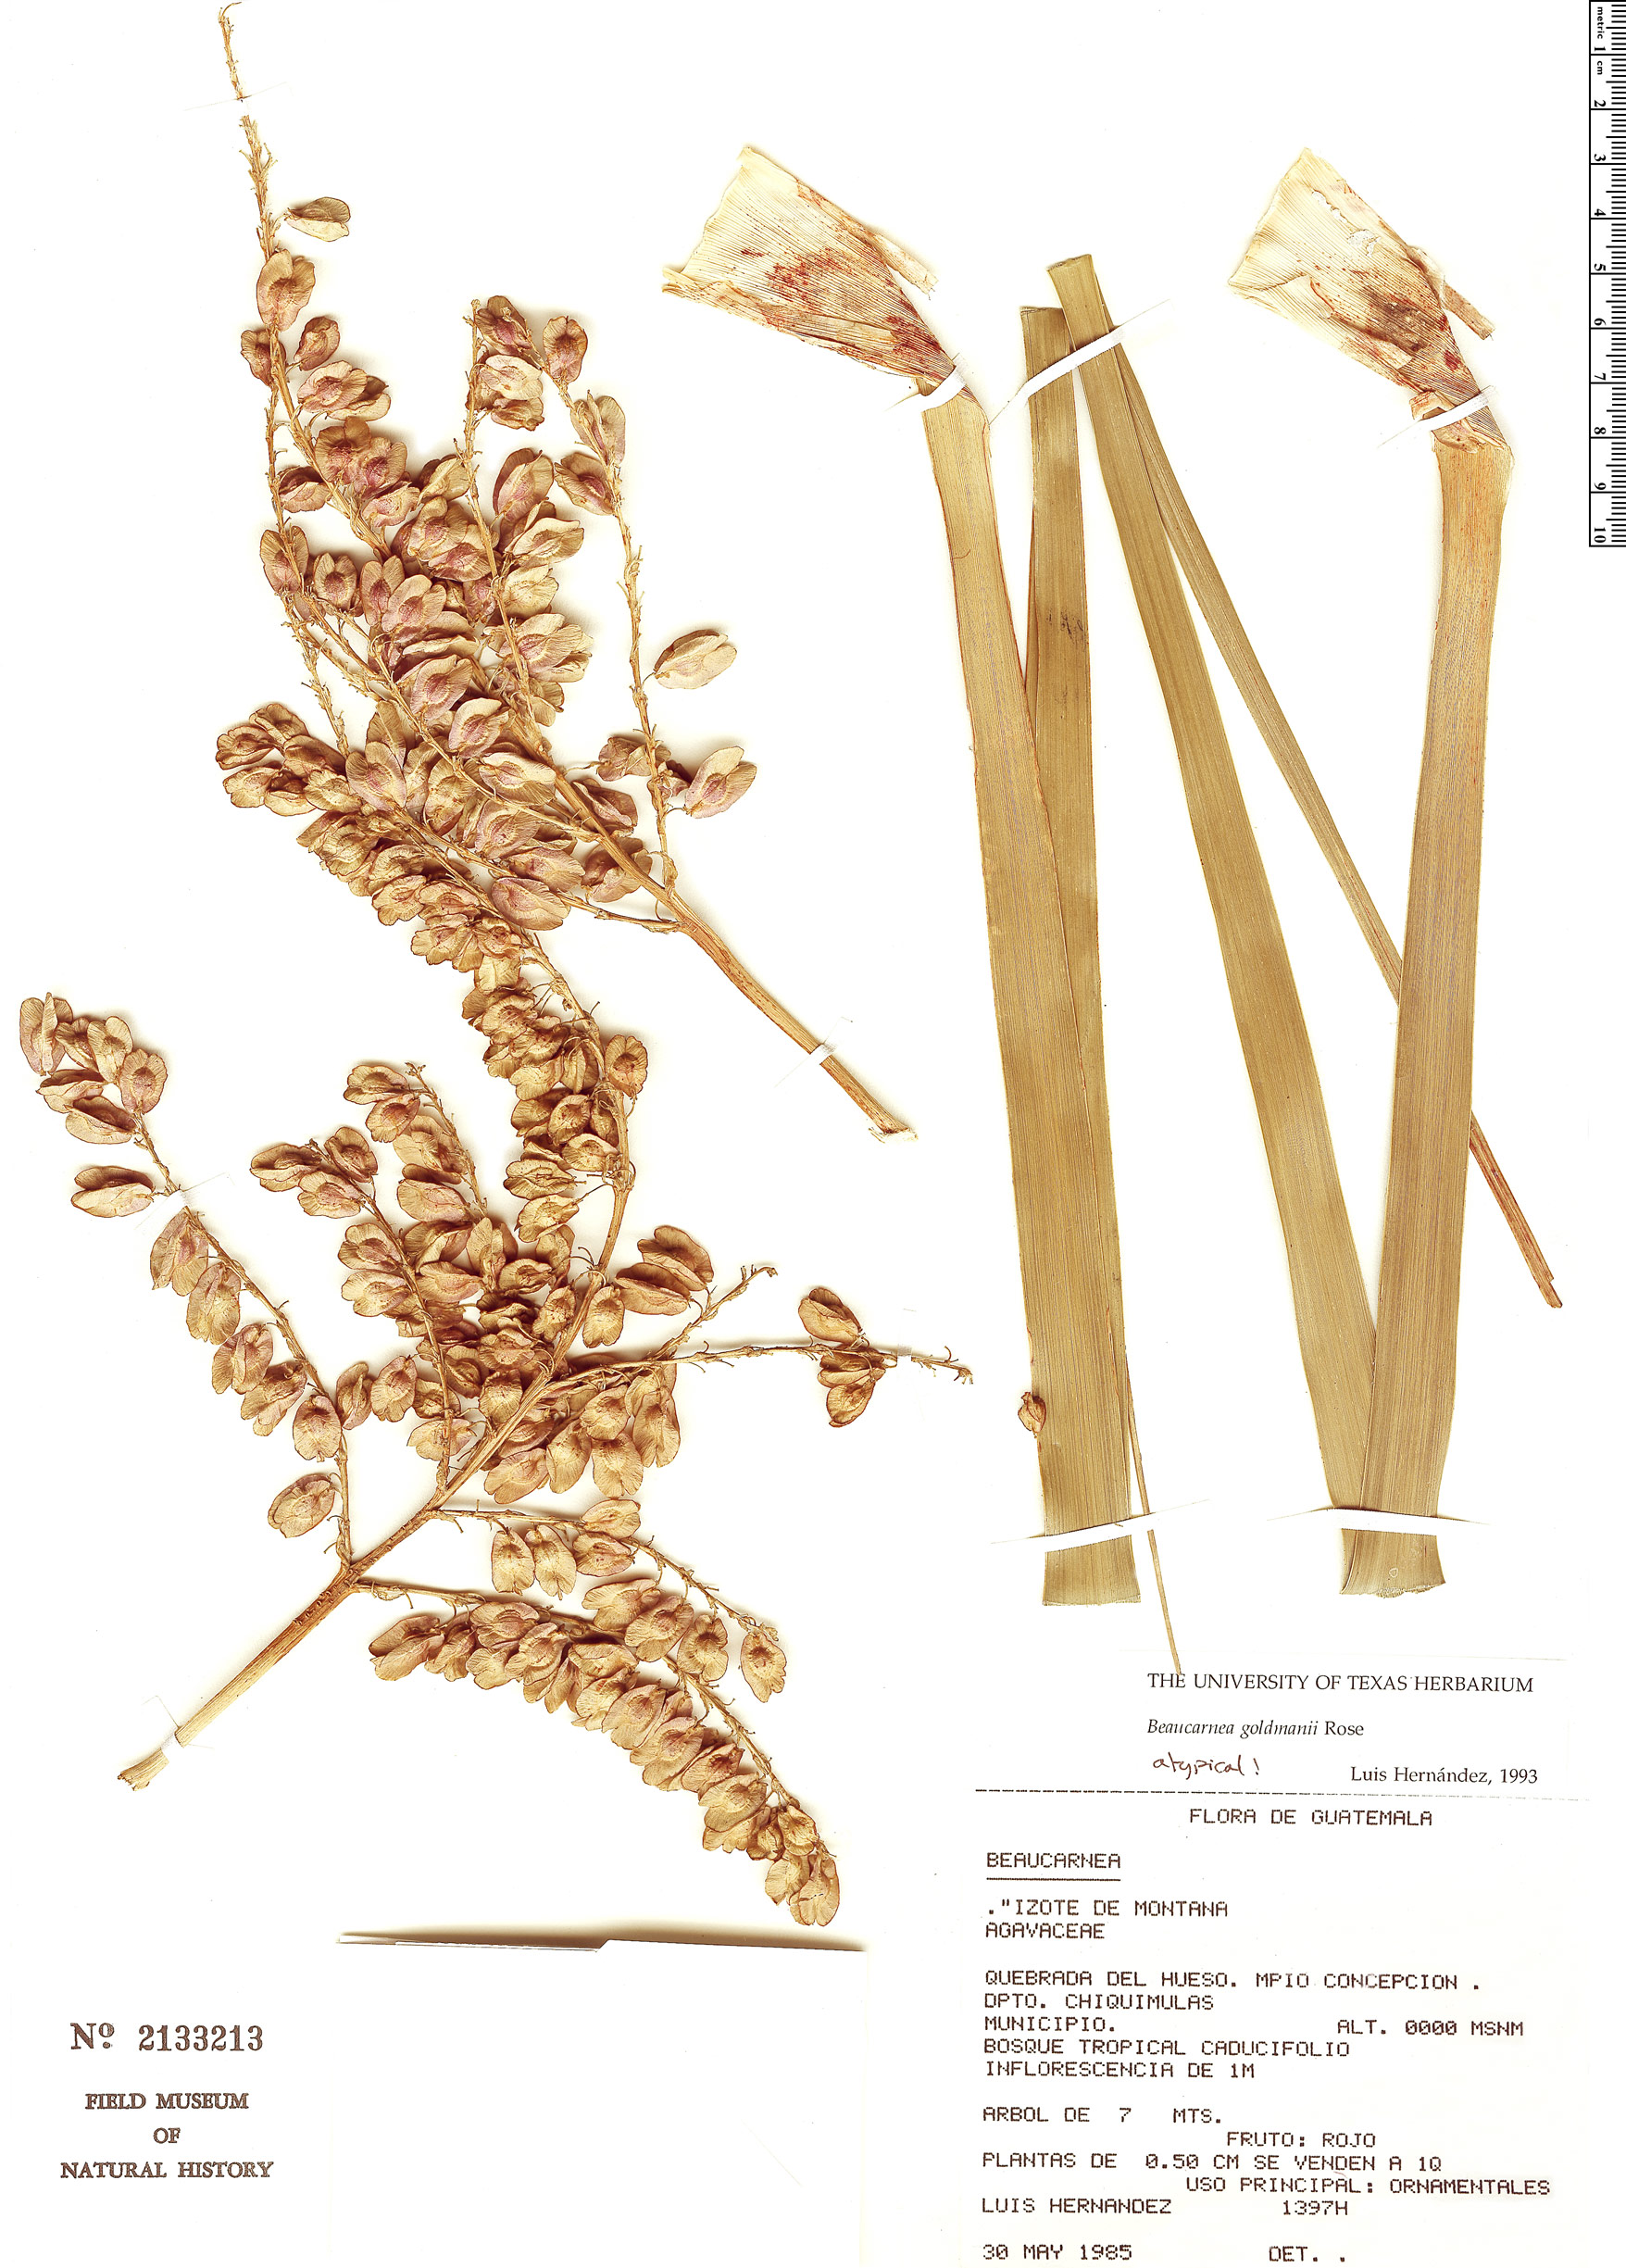 Specimen: Beaucarnea goldmanii